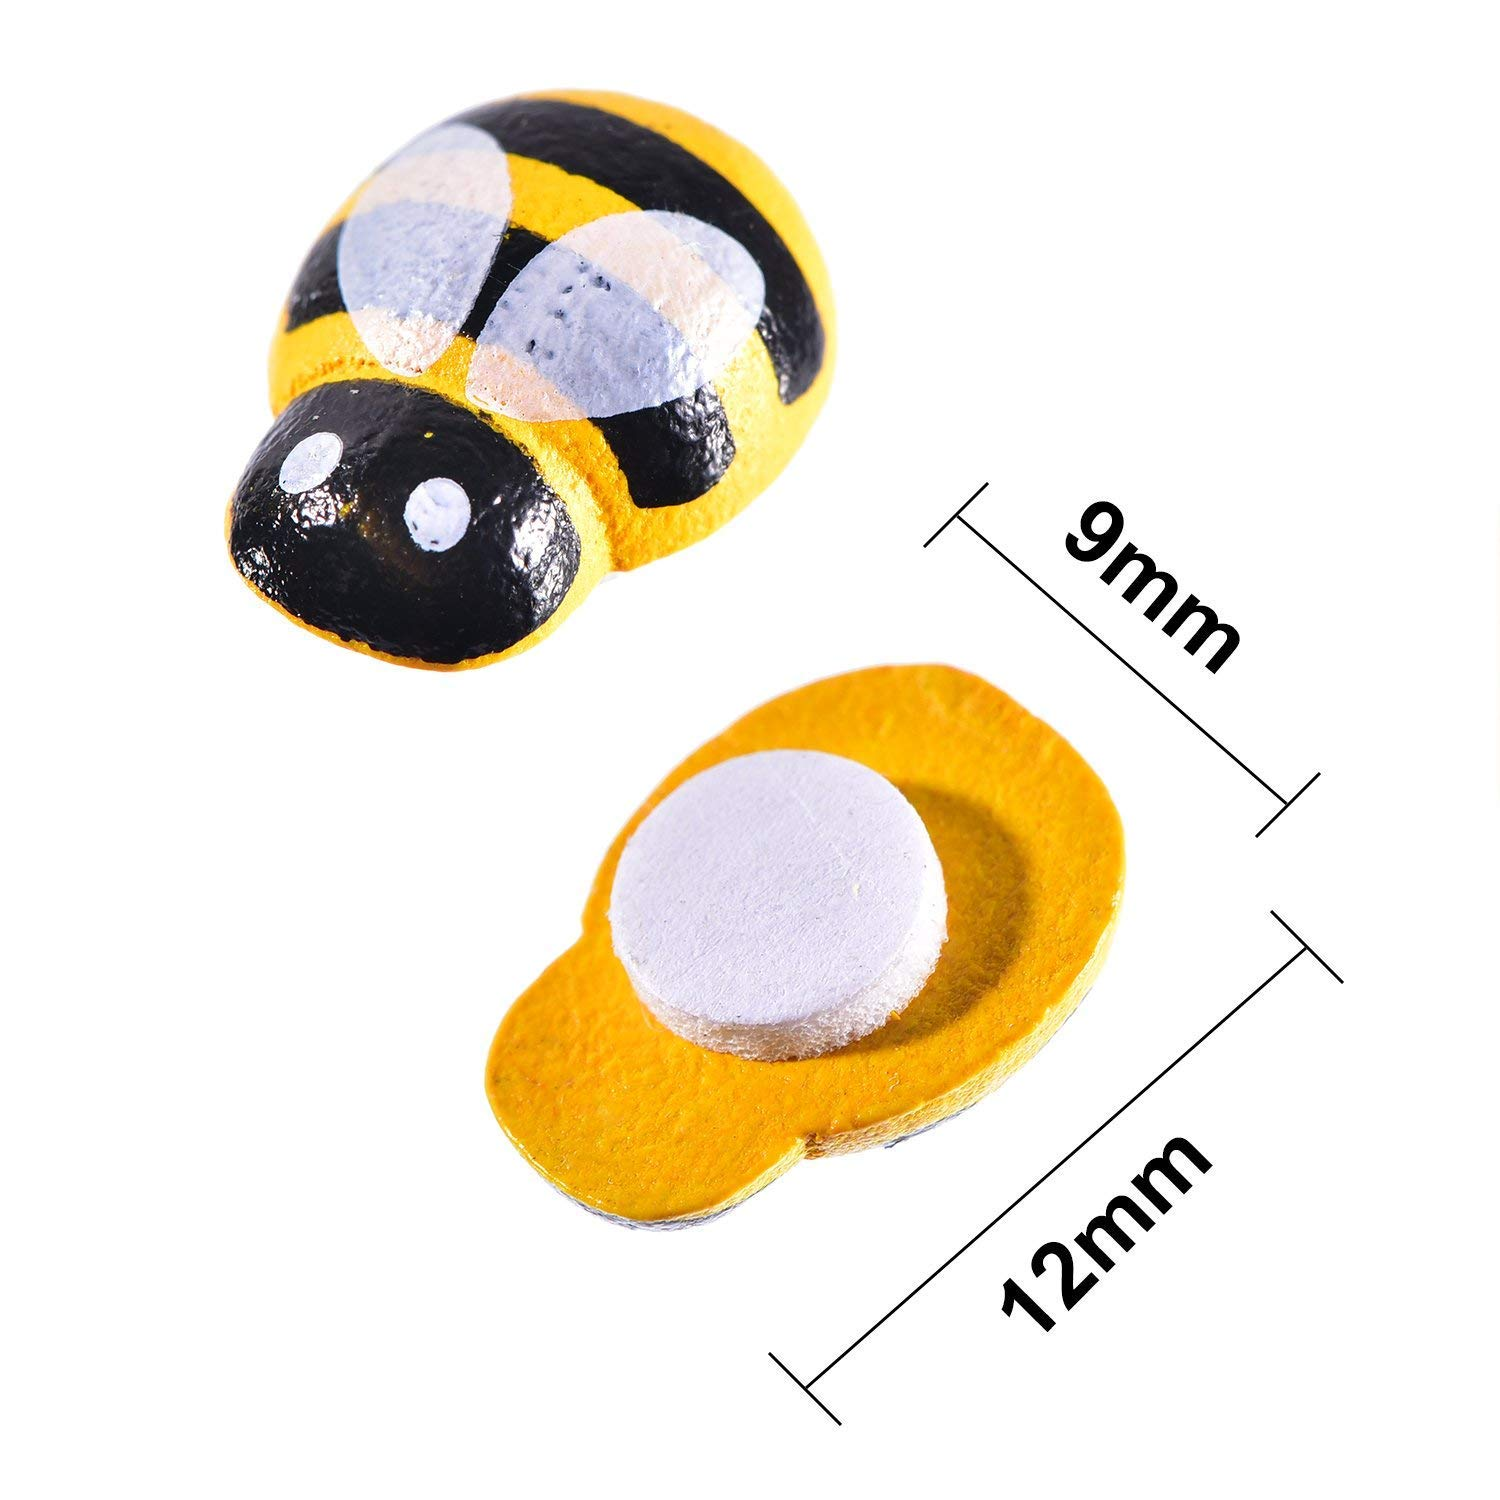 200 PCS Tiny Wooden Bee Embellishments Painted Flatback Wood Bumble Bee Pieces with Adhesive and Velvet Bag for Craft Scrapbooking DIY Decor